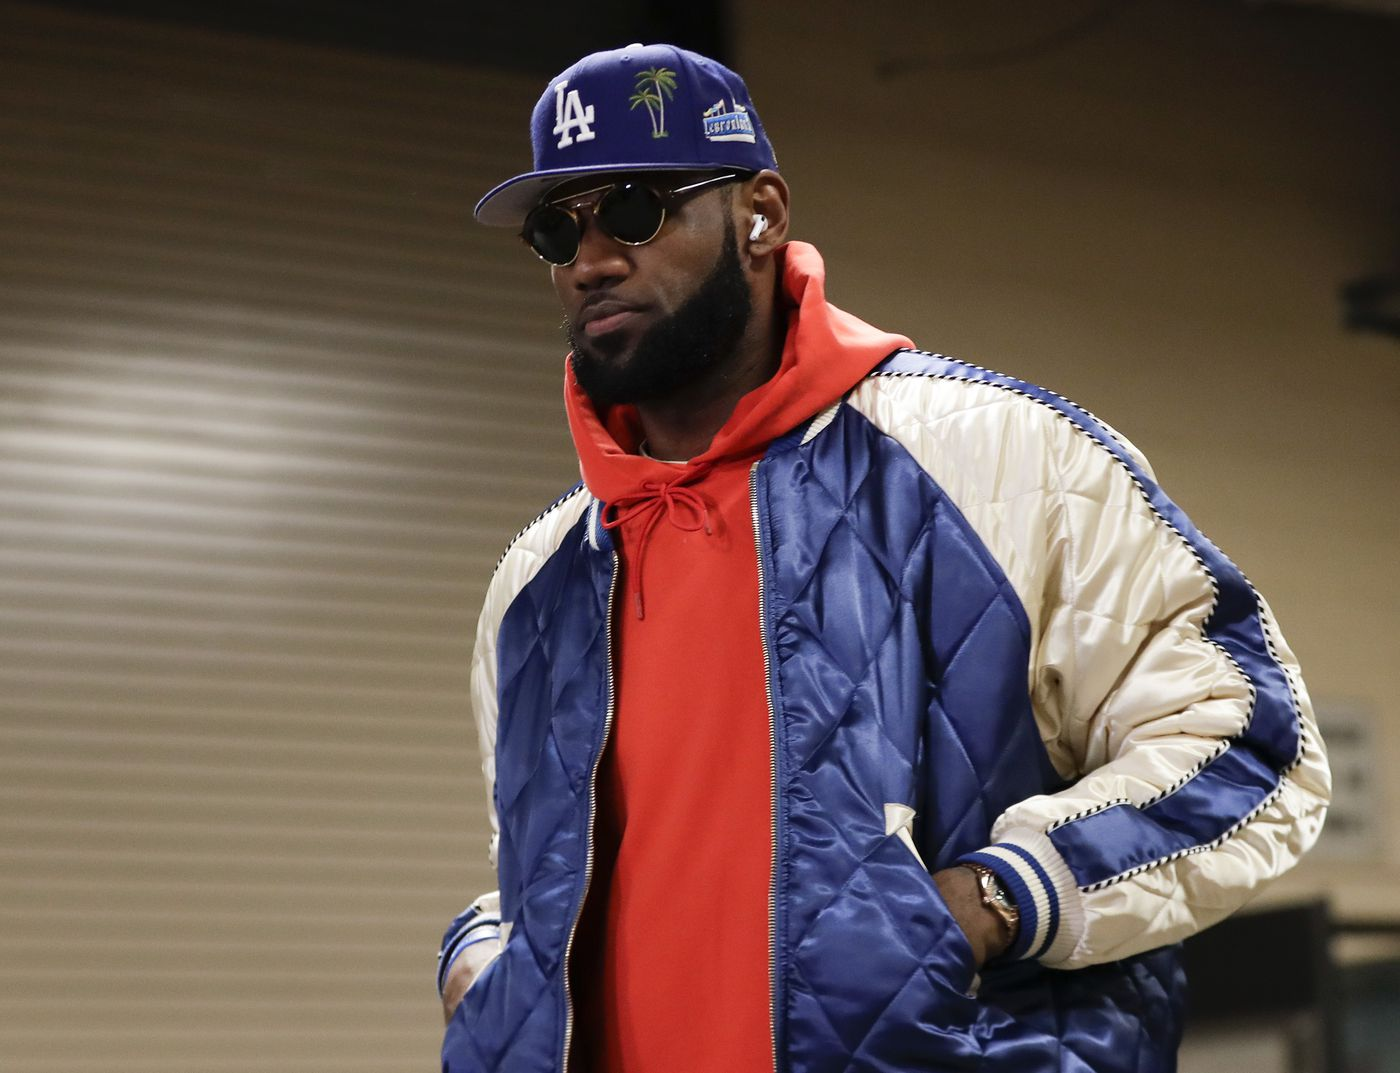 Los Angeles Lakers forward LeBron James walks into the Wells Fargo Center before the Sixers play the Lakers on Saturday, January 25, 2020 in Philadelphia.